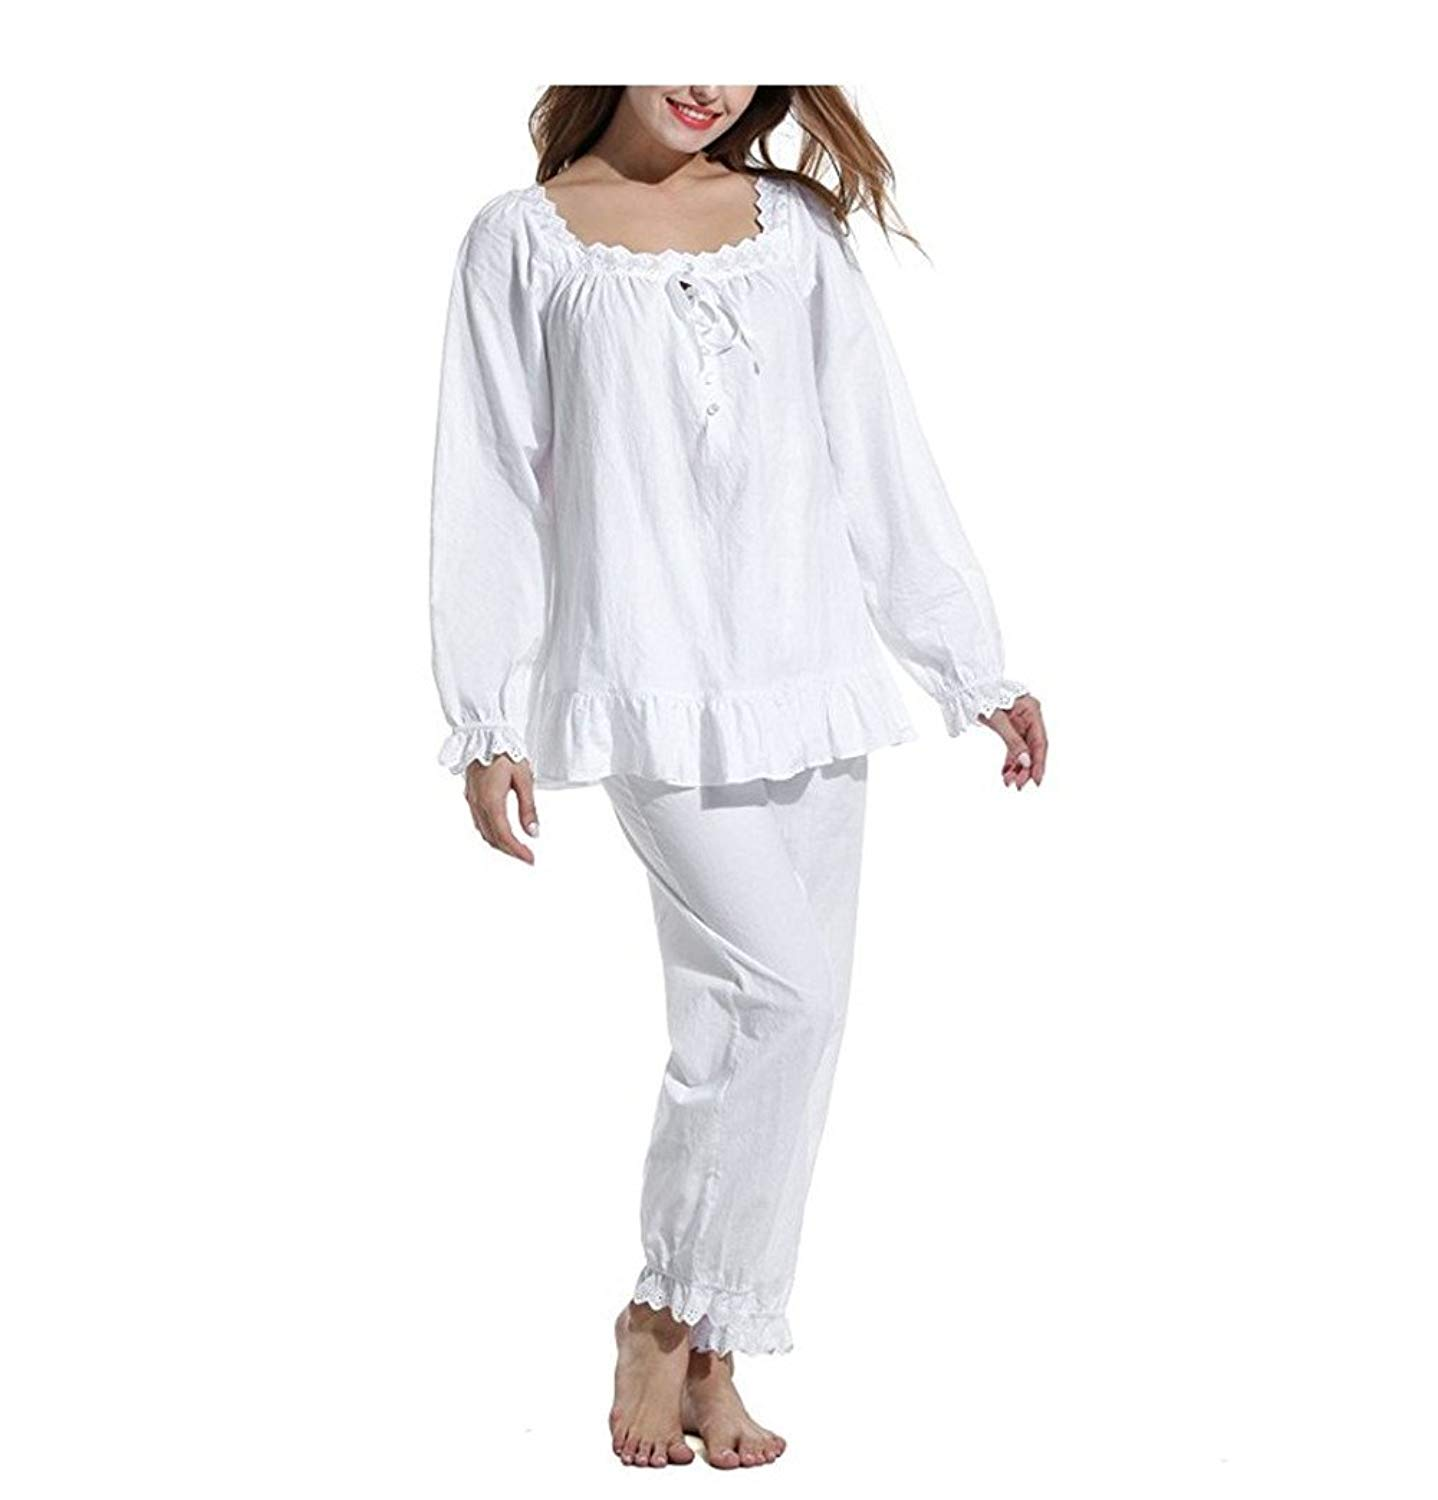 8f5354bdec Get Quotations · Womens 2 Set Cotton Victorian White Long Sleeve Pajama Set Nightgown  Sleepwear